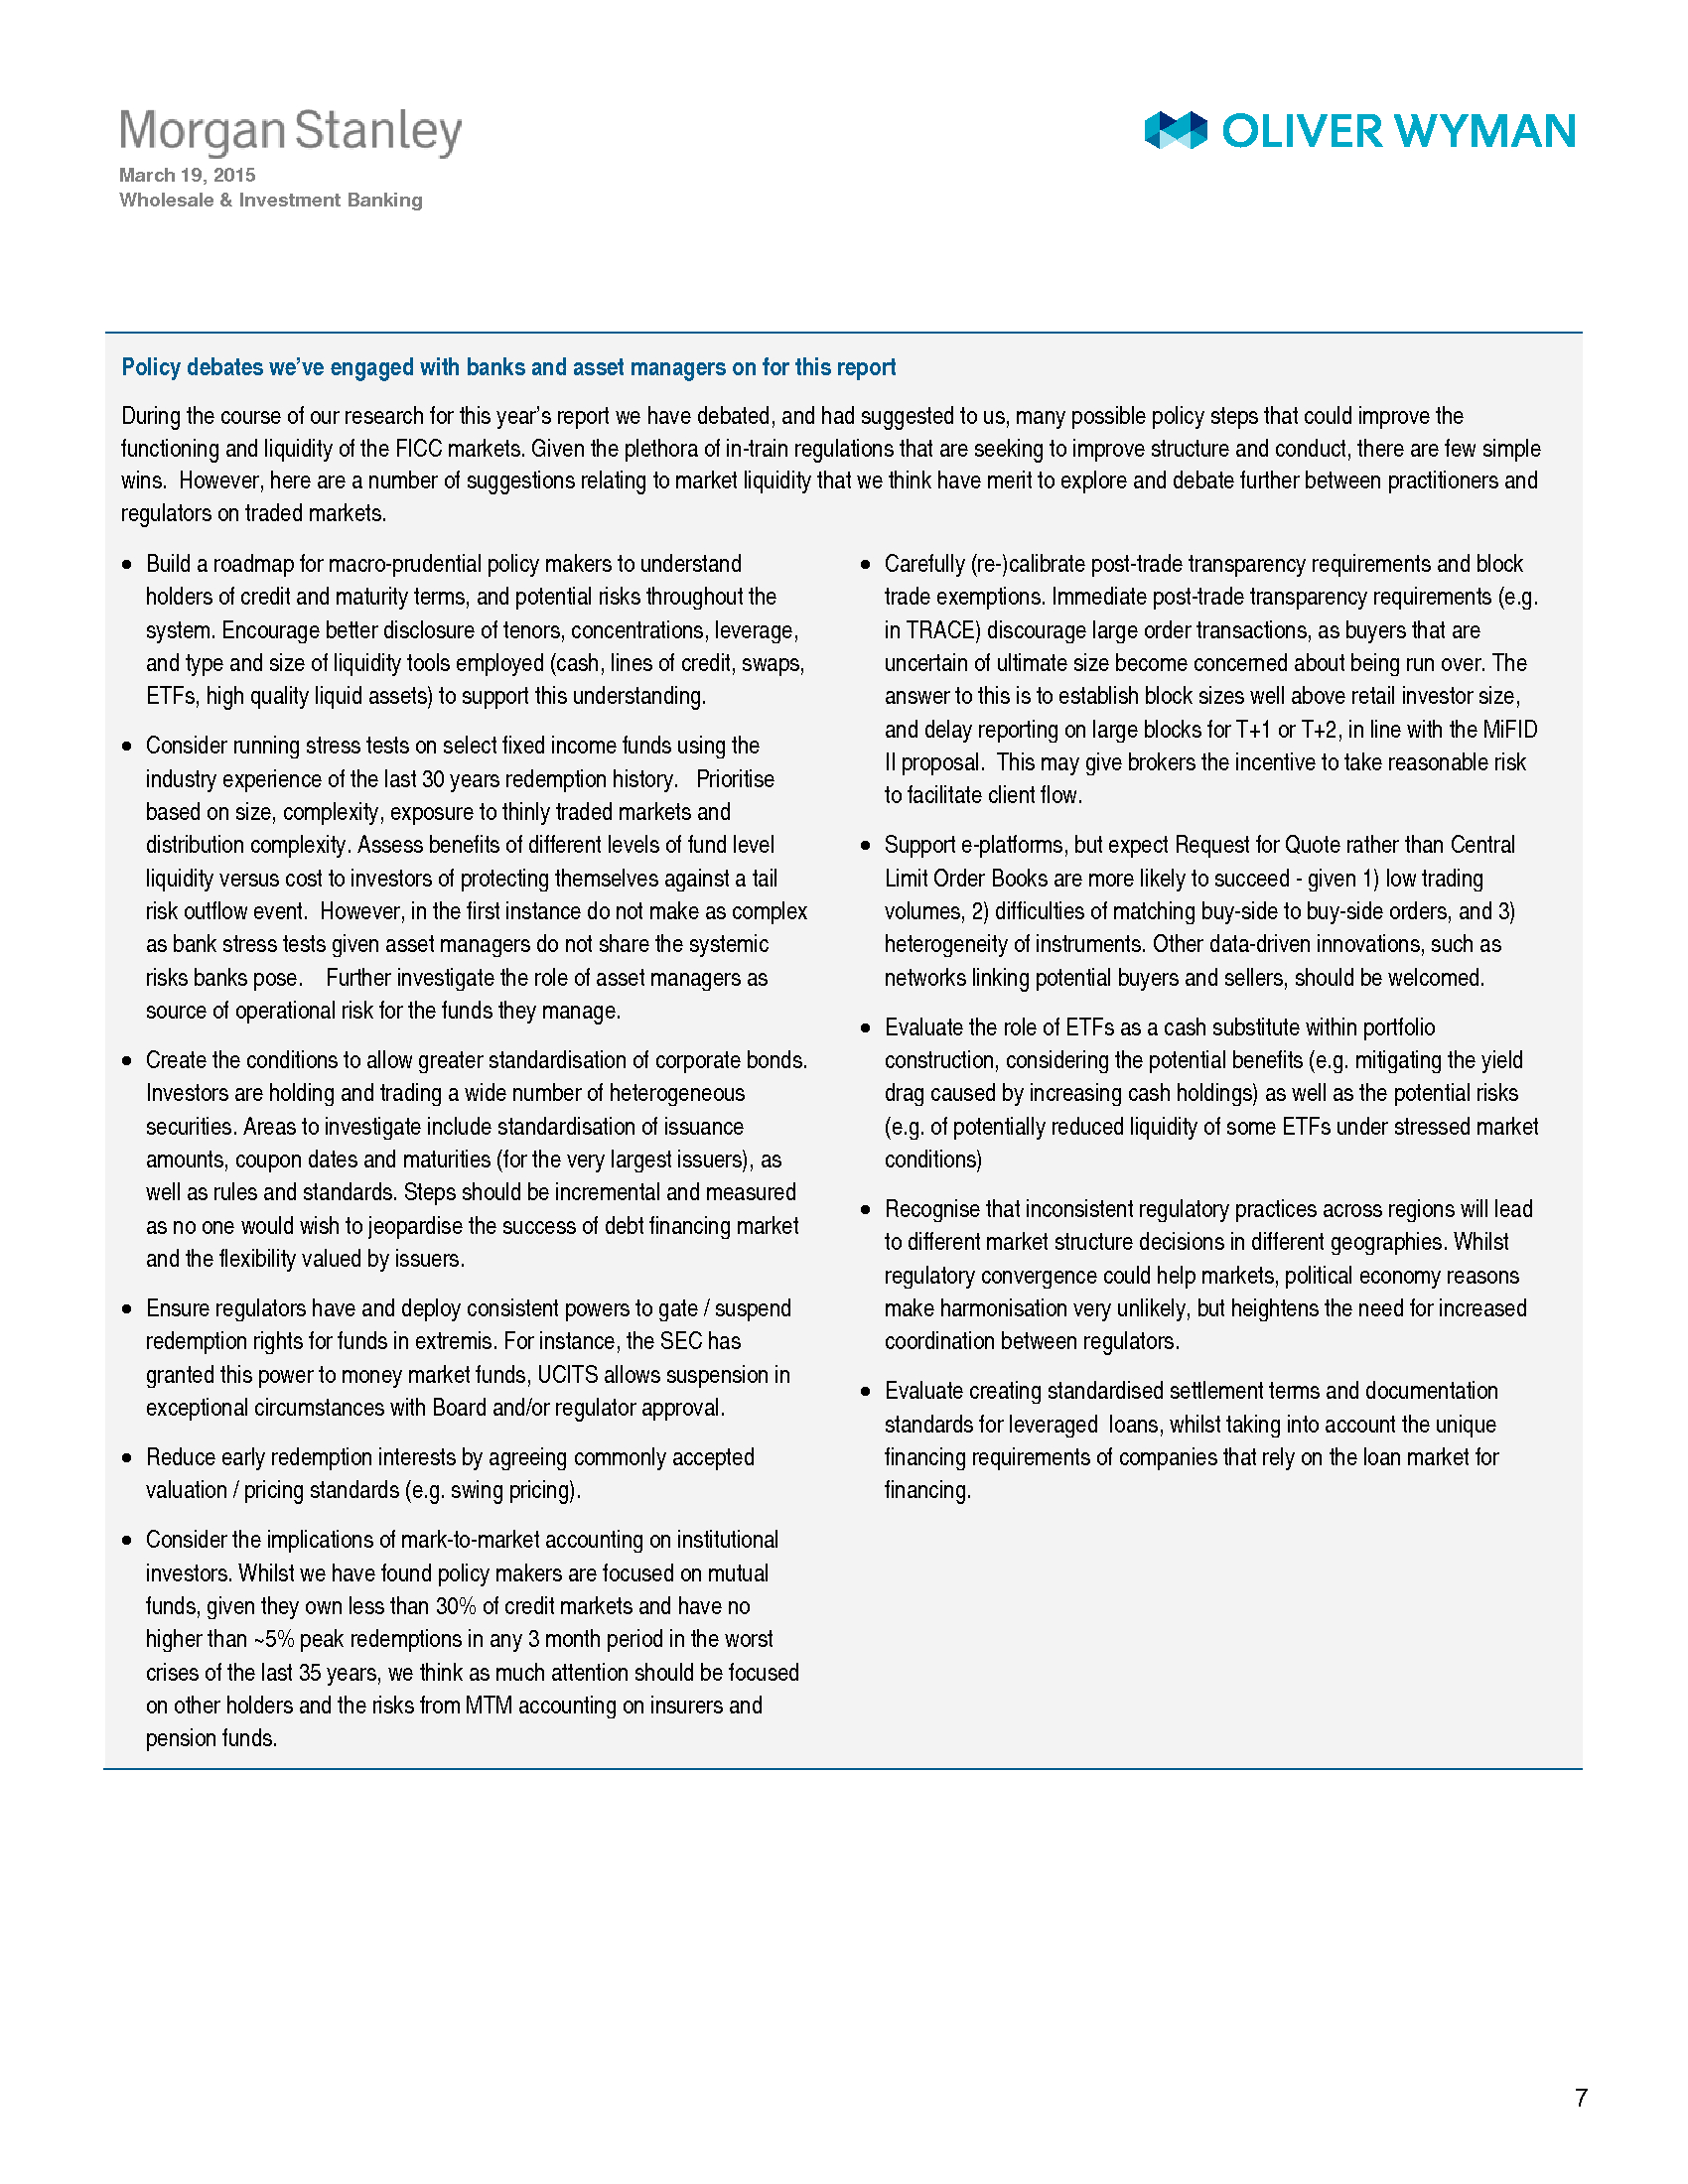 Advisorselect - Wholesale & Investment Banking Outlook